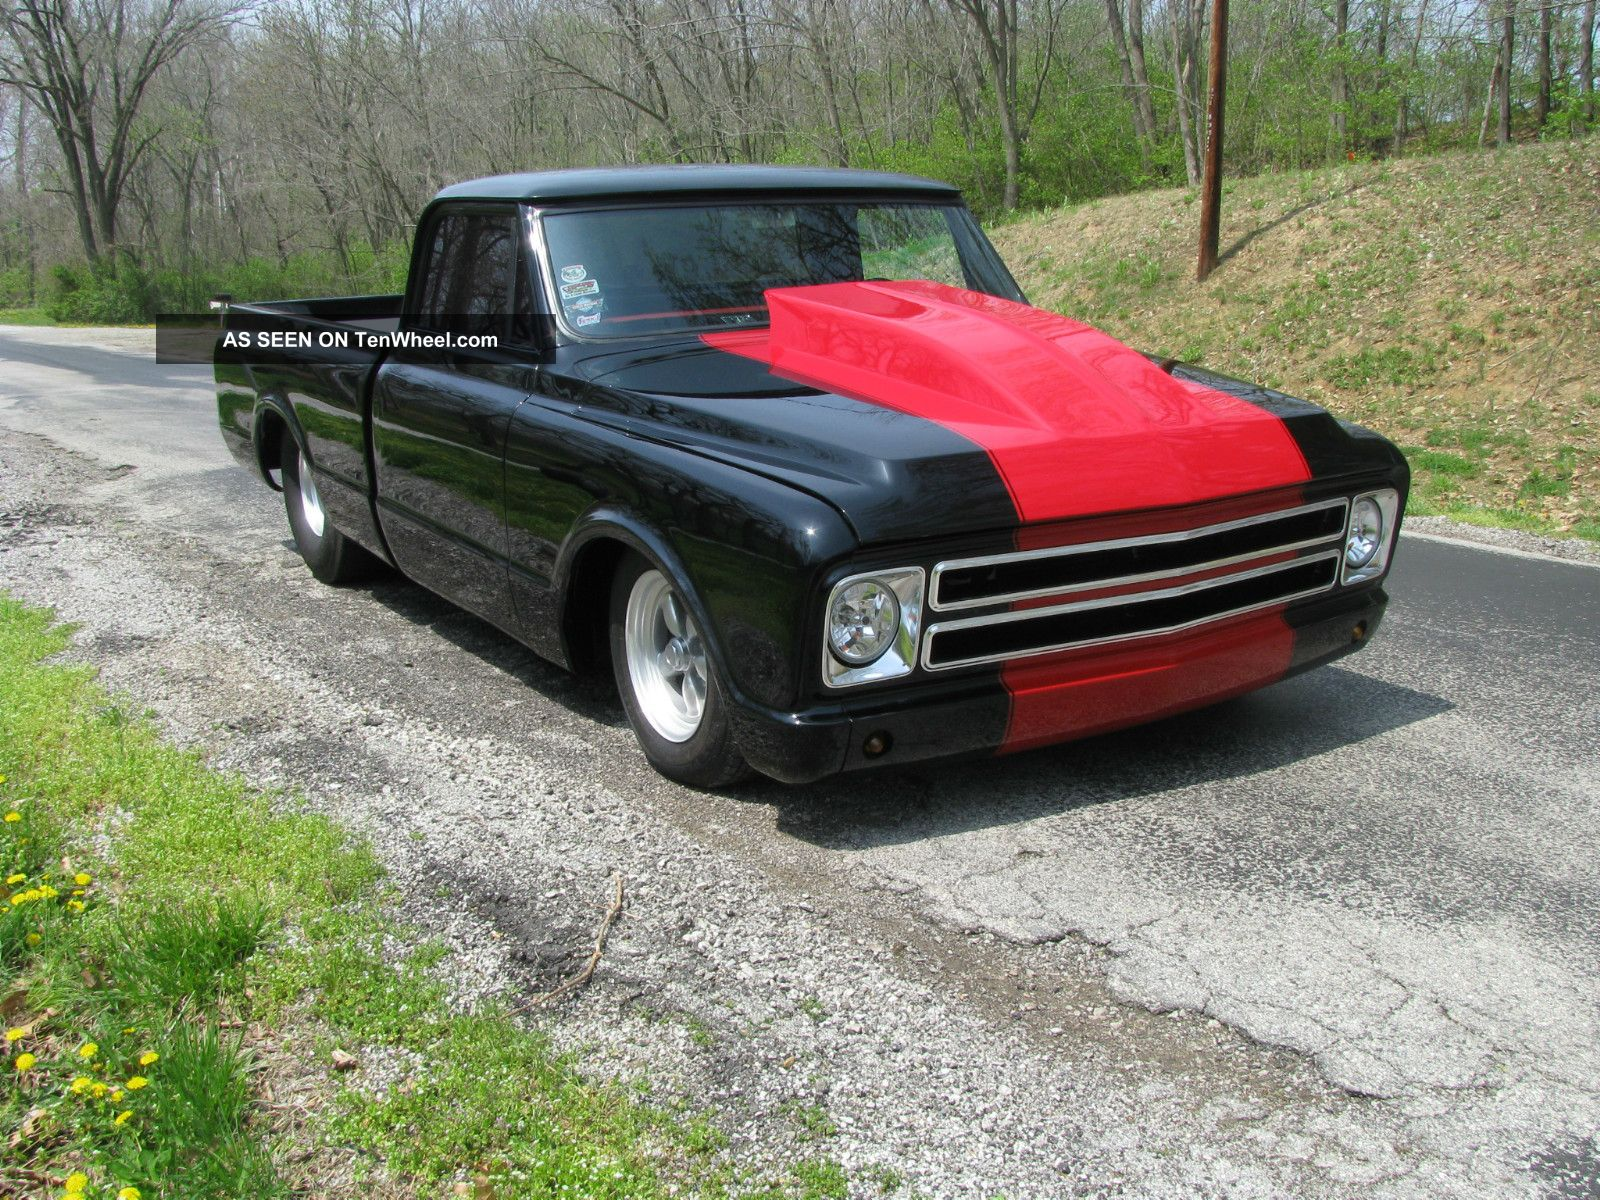 1972 Chevy / Gmc Pro Street Truck 67 68 69 70 71 72 C10 C-10 photo 3